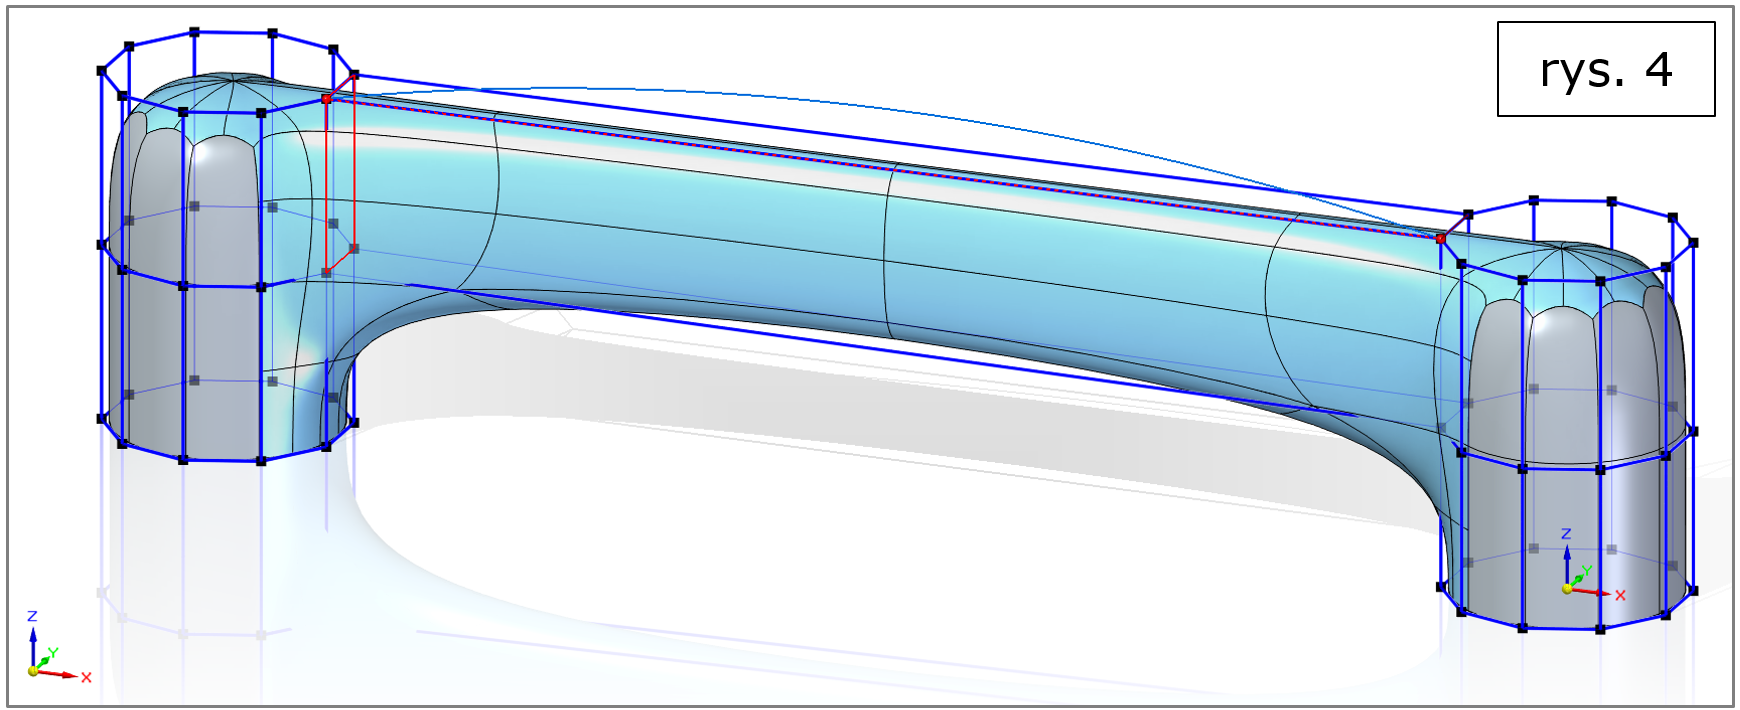 subdivision modeling, most bez krzywej Solid Edge 2022